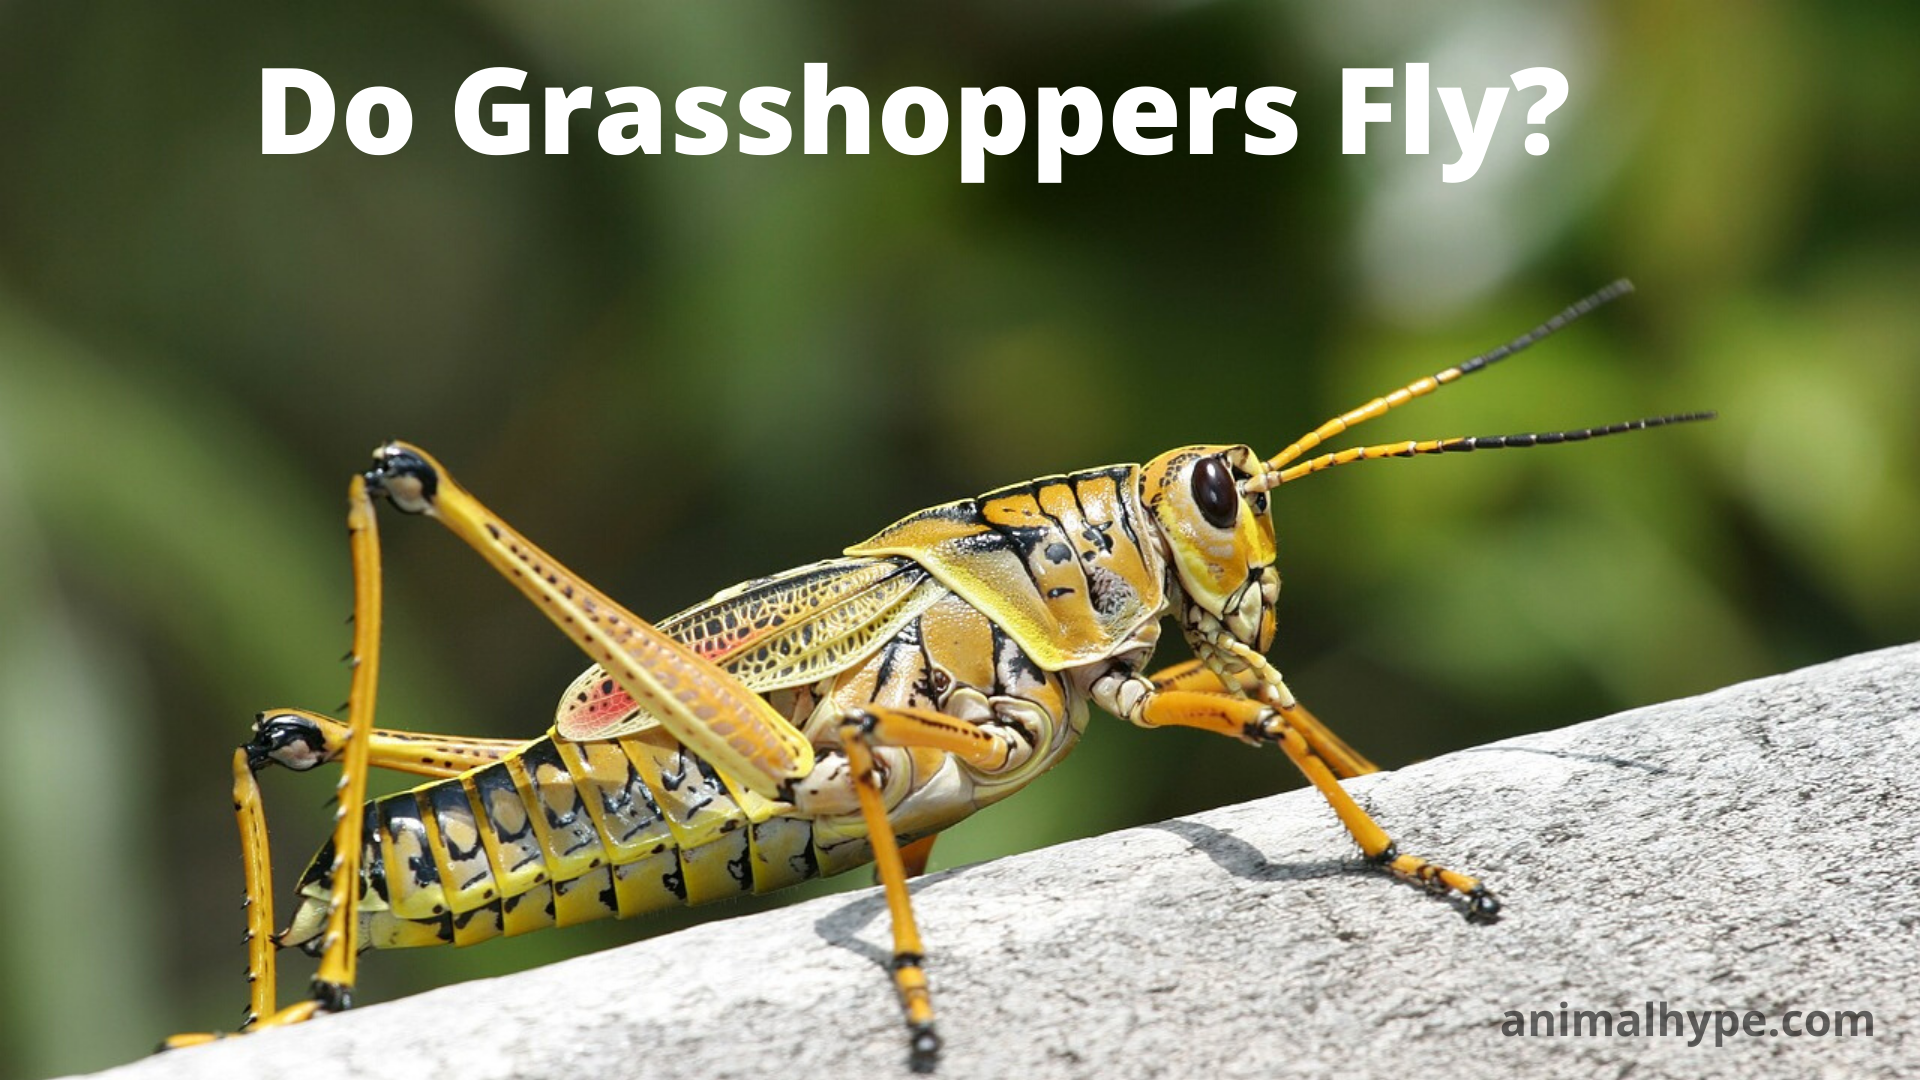 Do Grasshoppers Fly